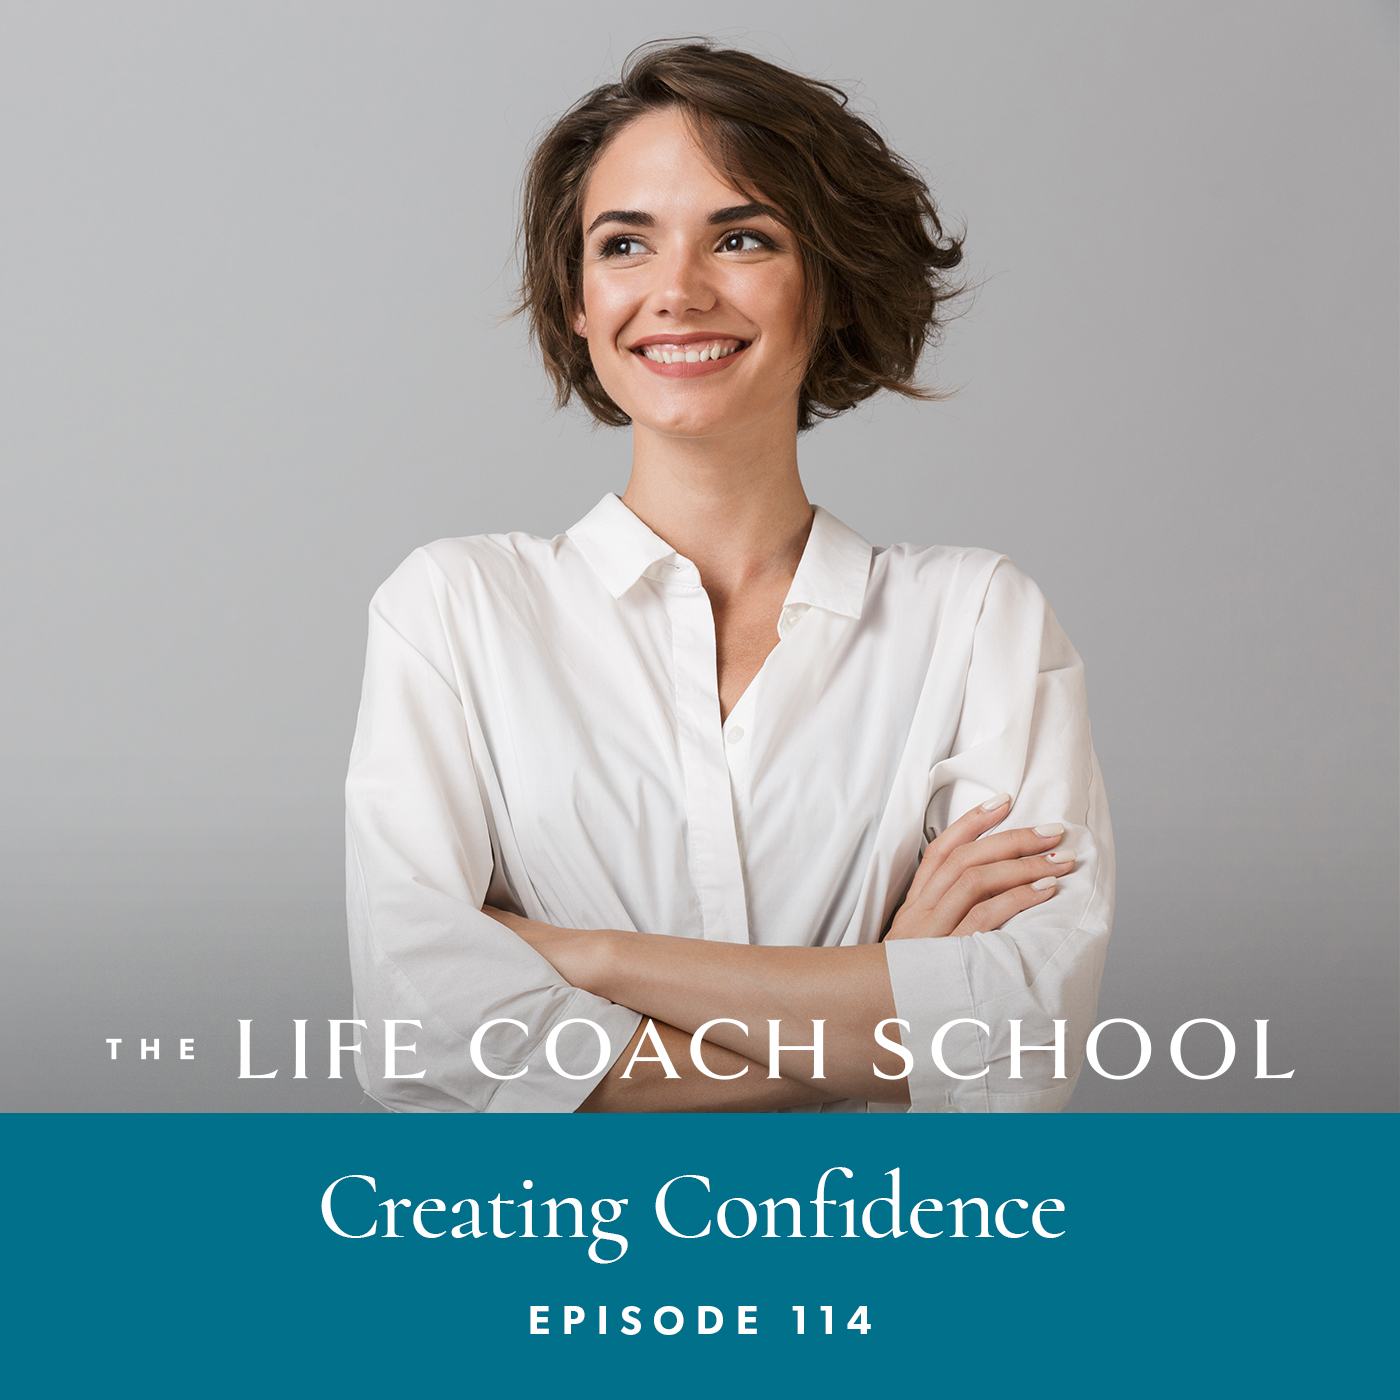 The Life Coach School Podcast with Brooke Castillo | Episode 114 | Creating Confidence